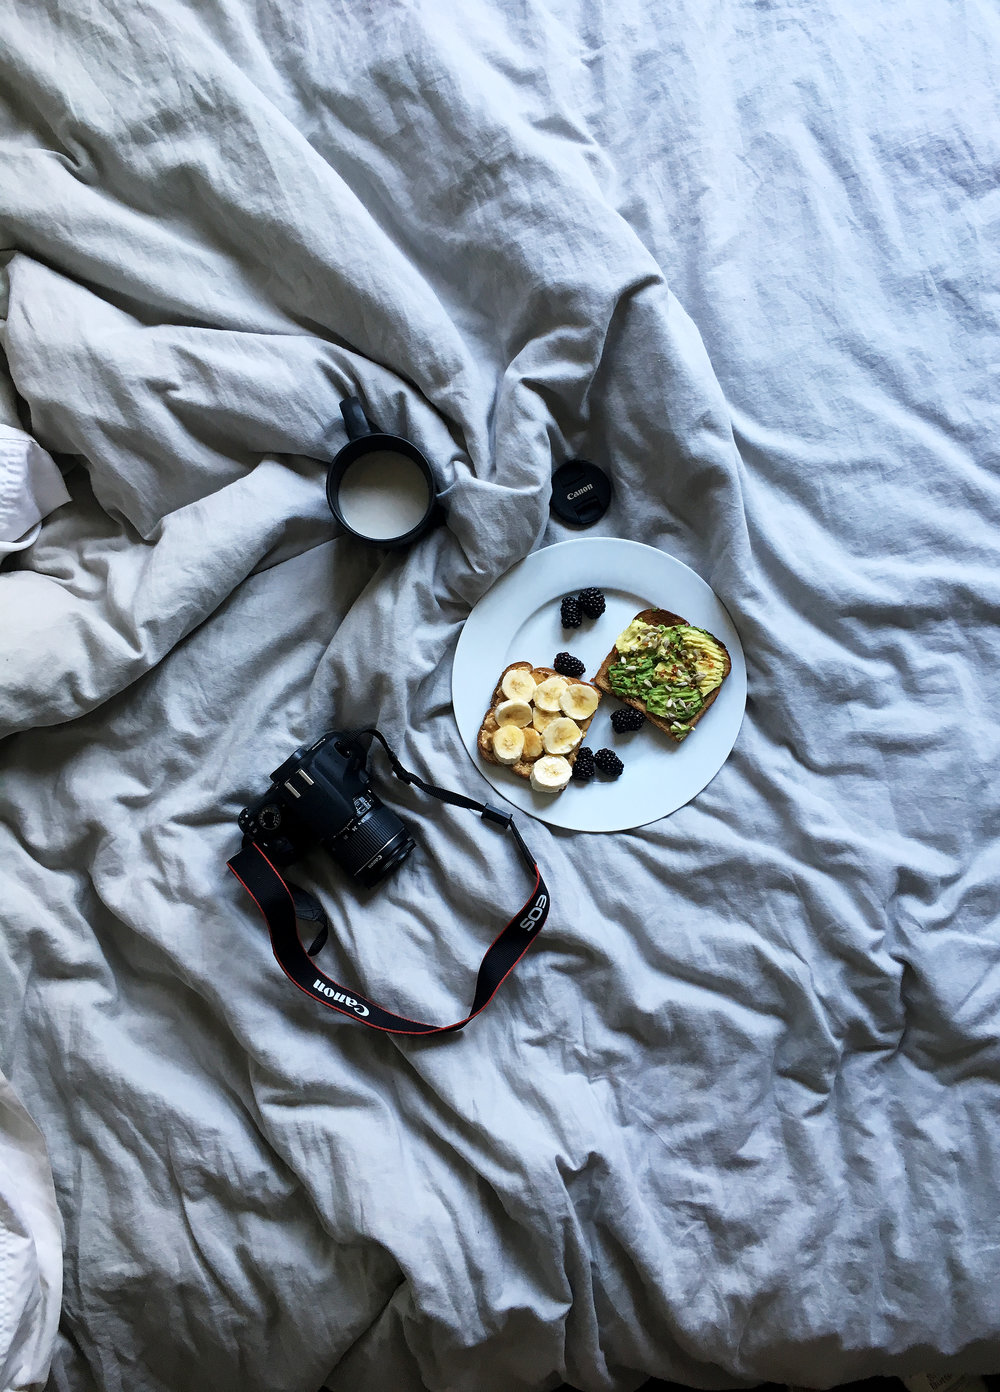 My cozy bed. My favorite snacks: peanut butter toast with bananas and honey & avocado toast with red pepper flakes and sunflower seeds. Yum.